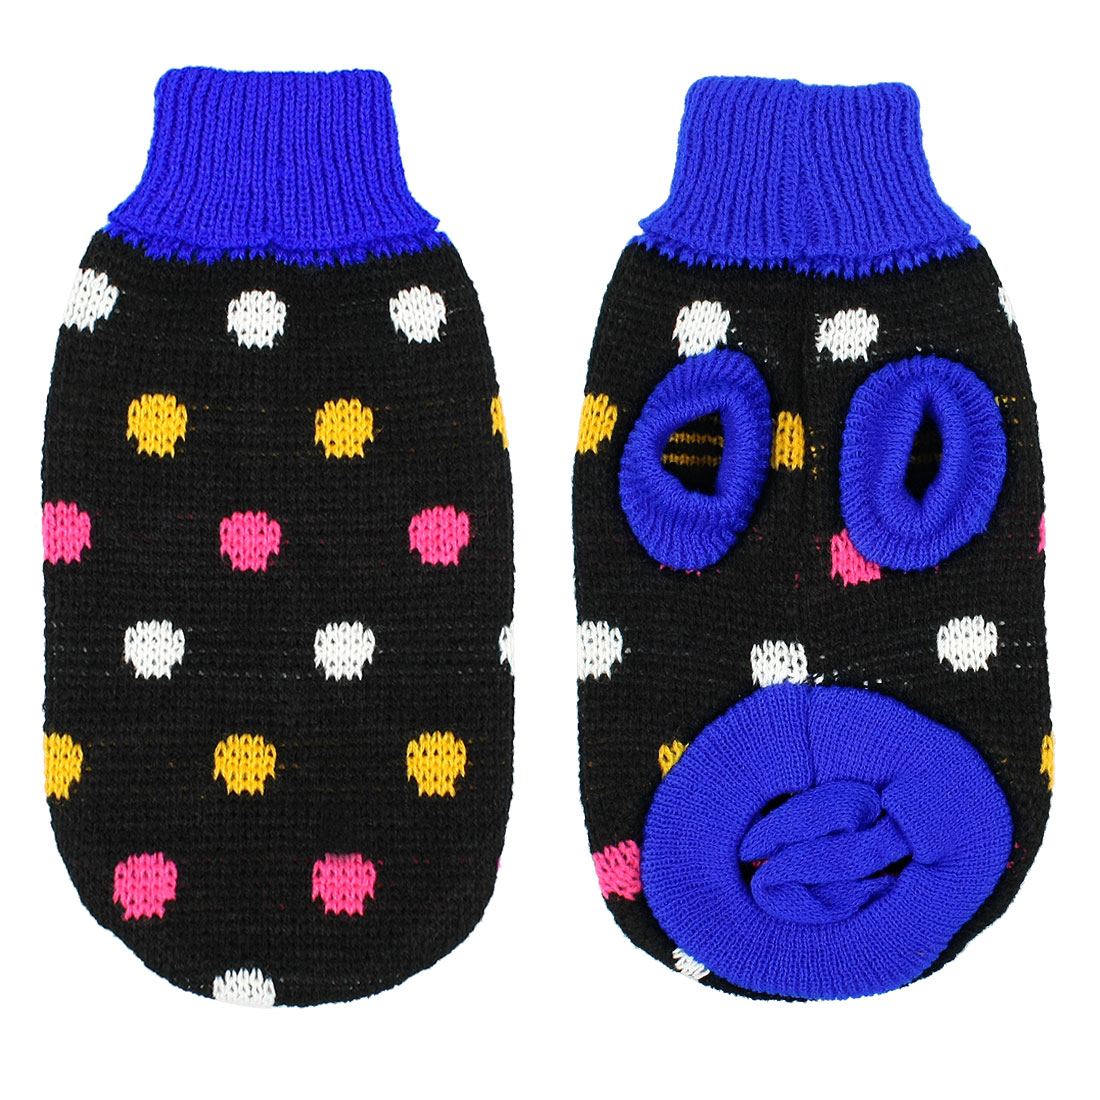 Knit Turtleneck Multicolor Polka Dot Pet Dog Puppy Sweater Clothes Black S